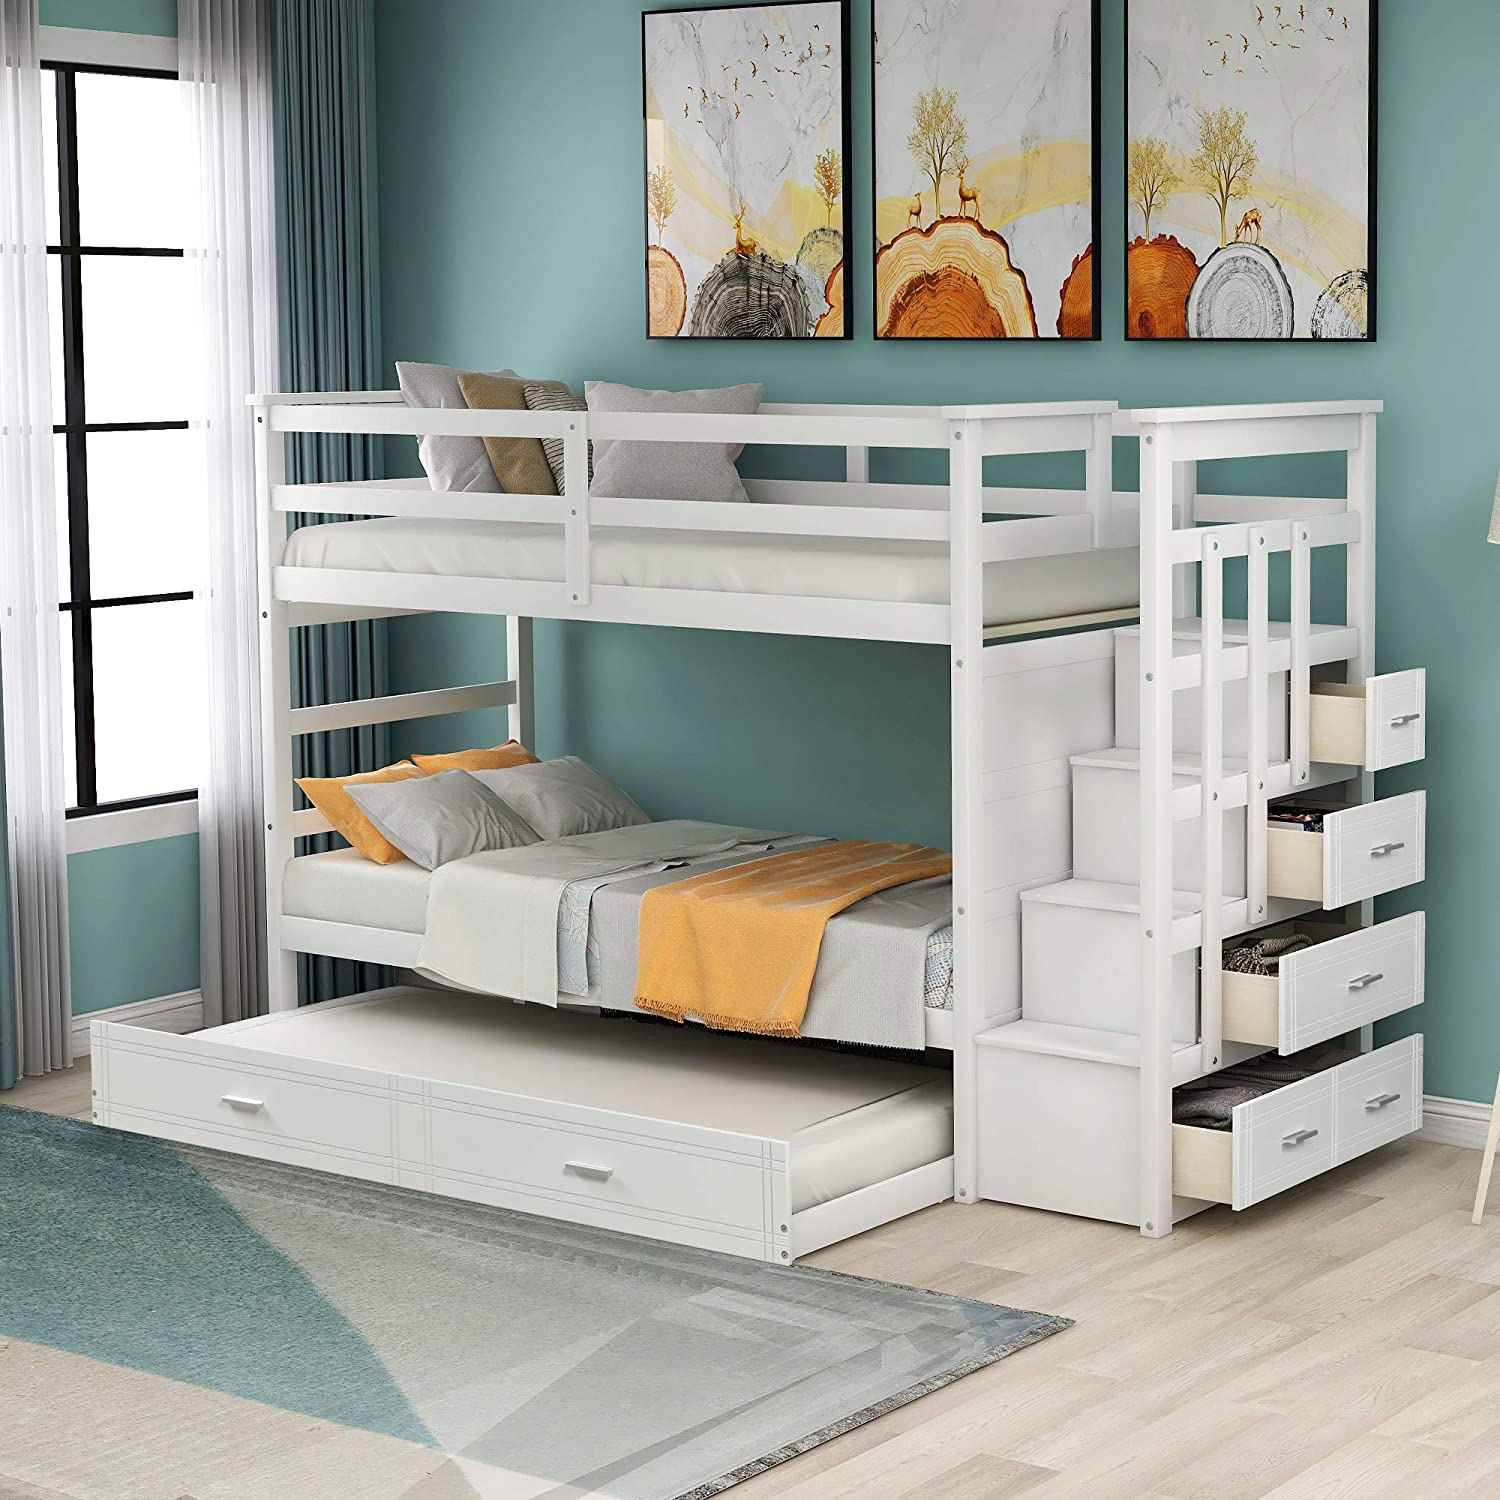 Amazon Com Twin Over Twin Bunk Bed With Trundle And Staircase Wood Twin Bunk Bed Frame With 4 Storage Drawers And Guardrails No Box Spring Needed White Kitchen Dining